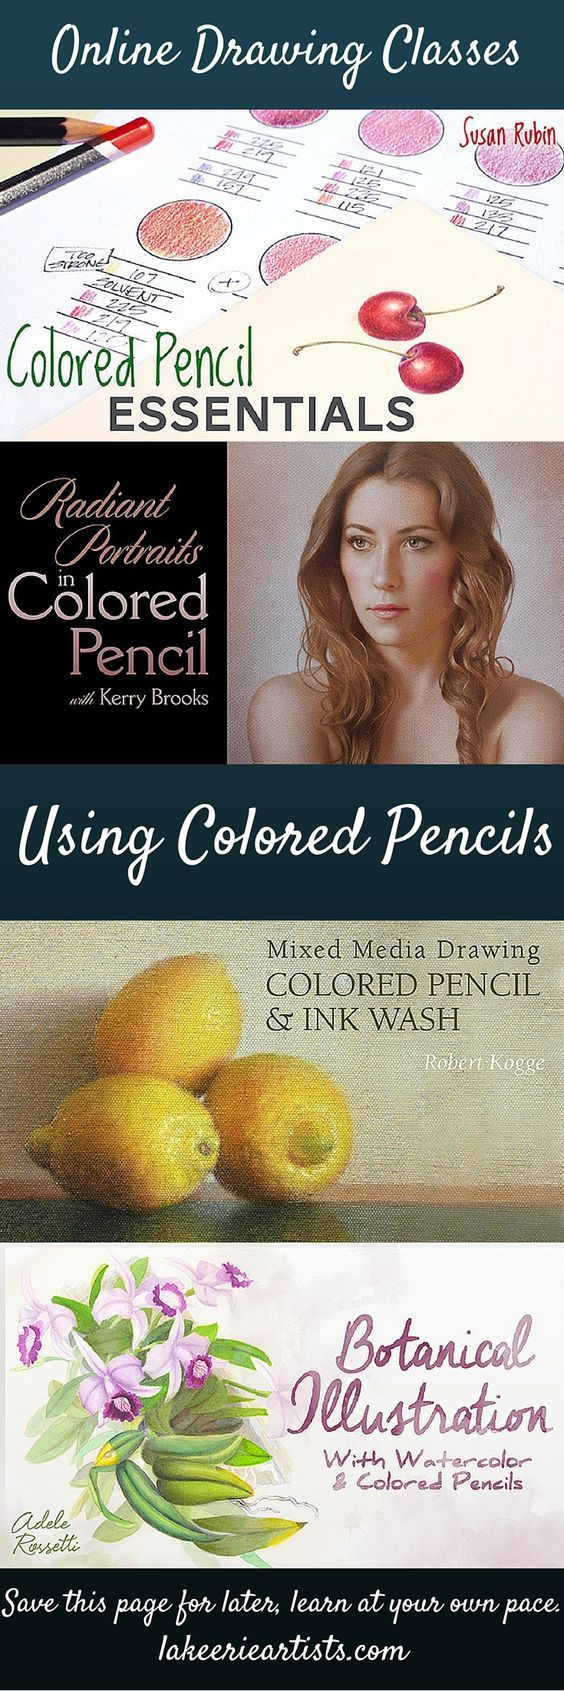 Co color to draw - Learn To Draw With Colored Pencils In A Wide Variety Of Techniques From Beginner On Up